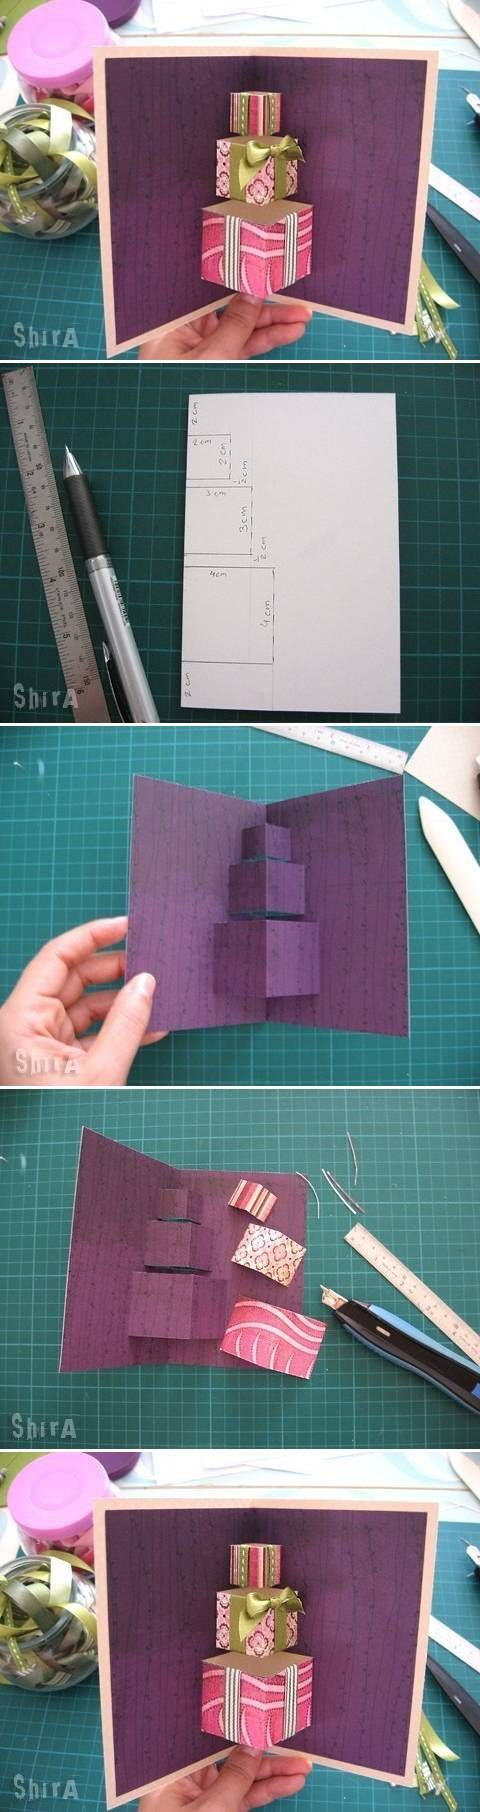 DIY Simple 3D Gift Card...I would make it into a wedding cake for someone who's getting married :)